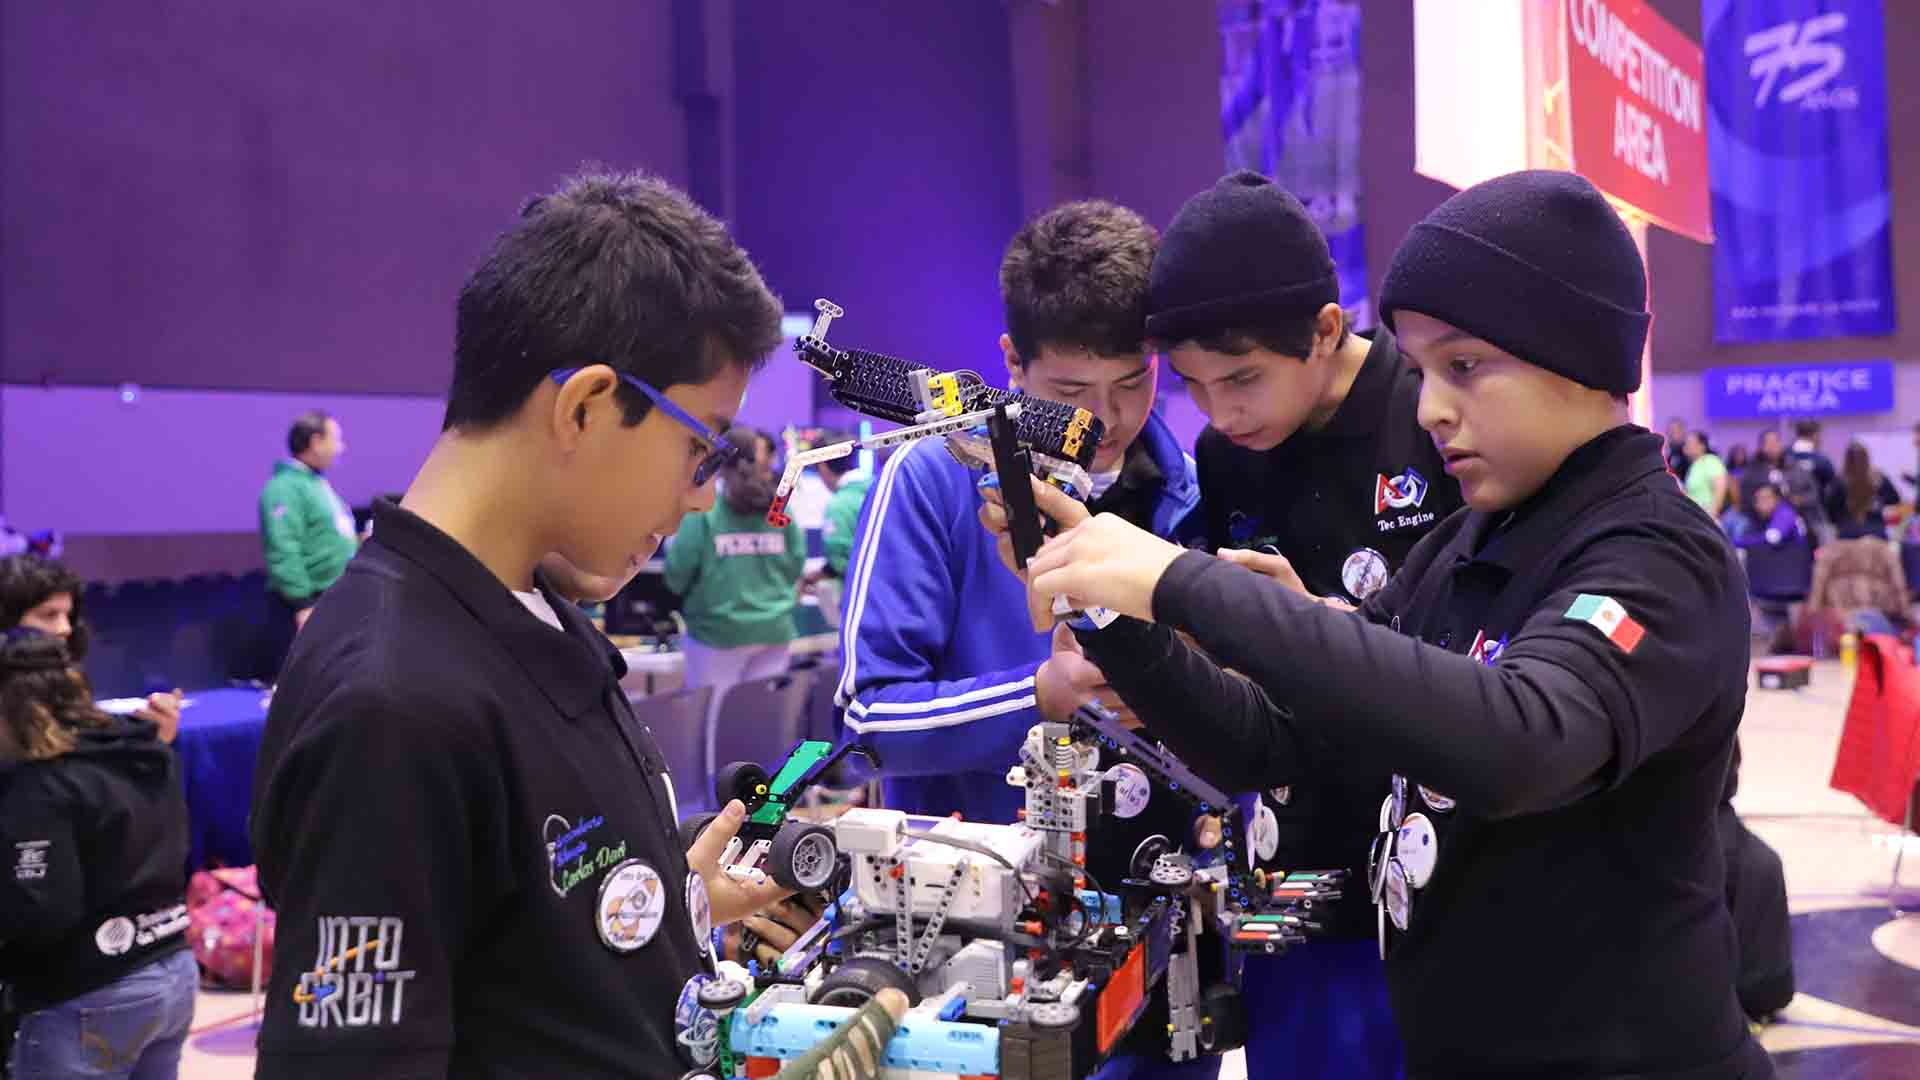 First Lego League en Tec de Monterrey campus Laguna